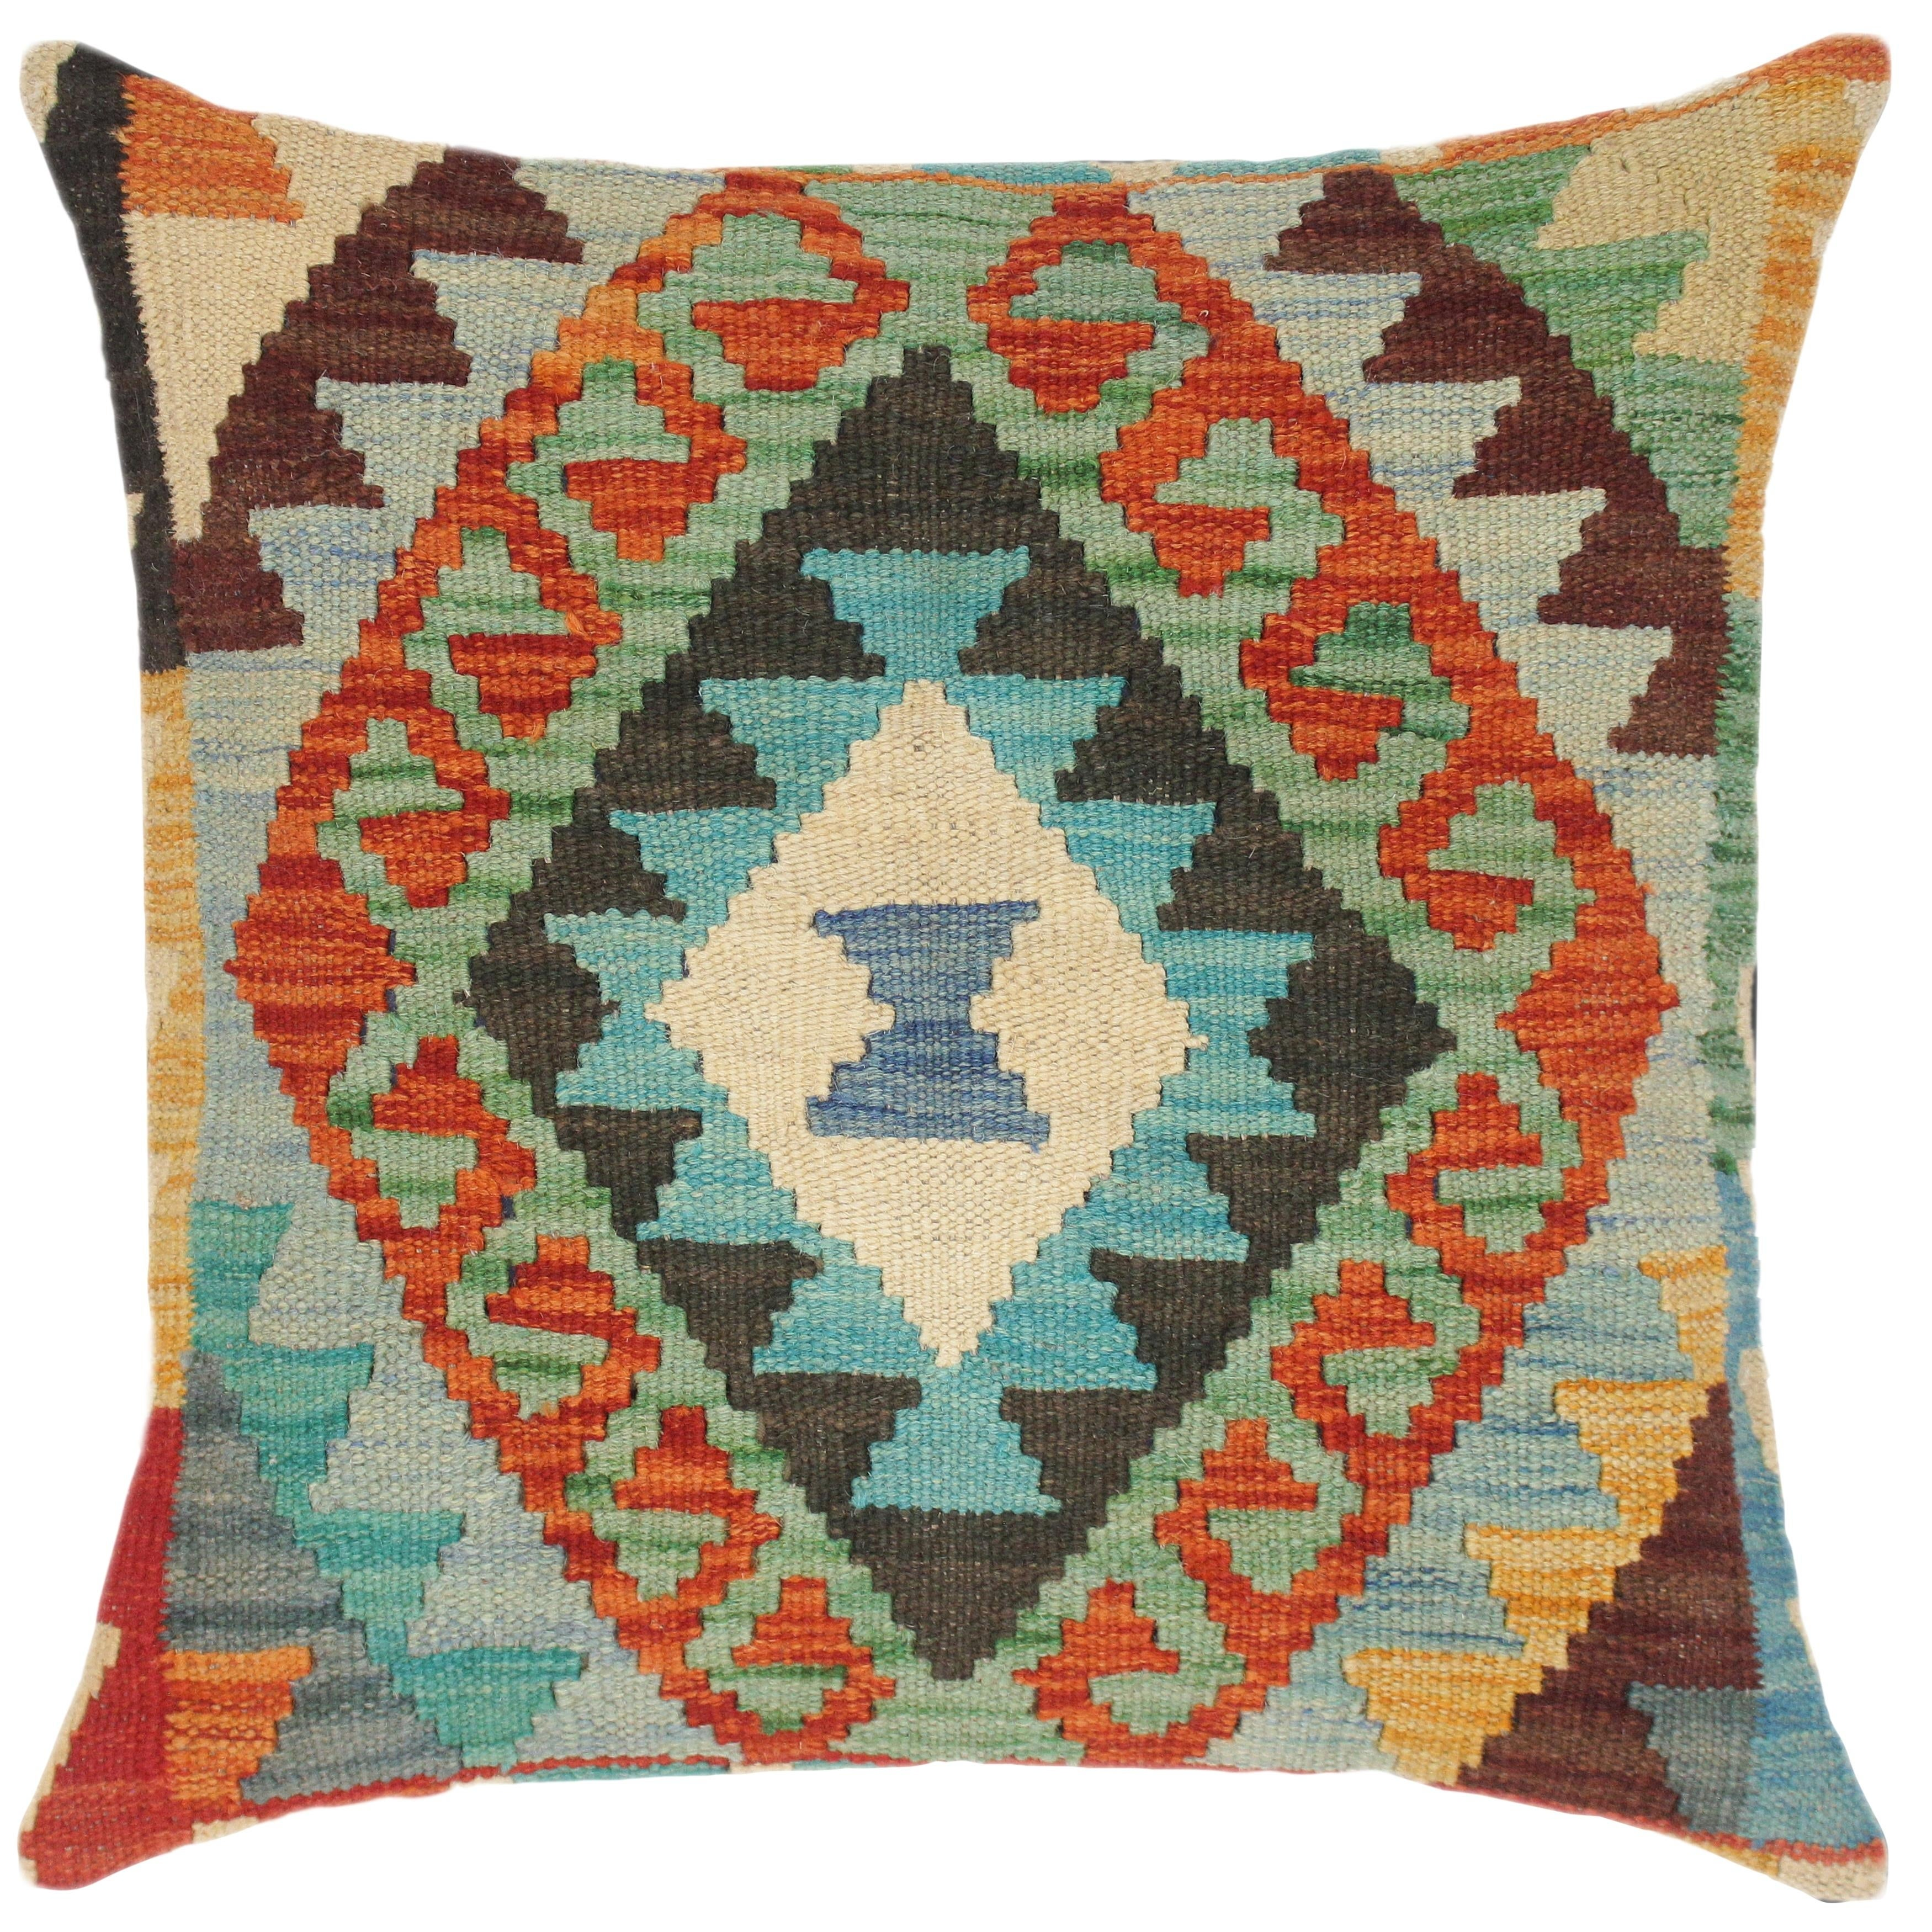 Southwestern Benito Hand Woven Turkish Kilim Pillow 18 In X 18 In Overstock 32524891